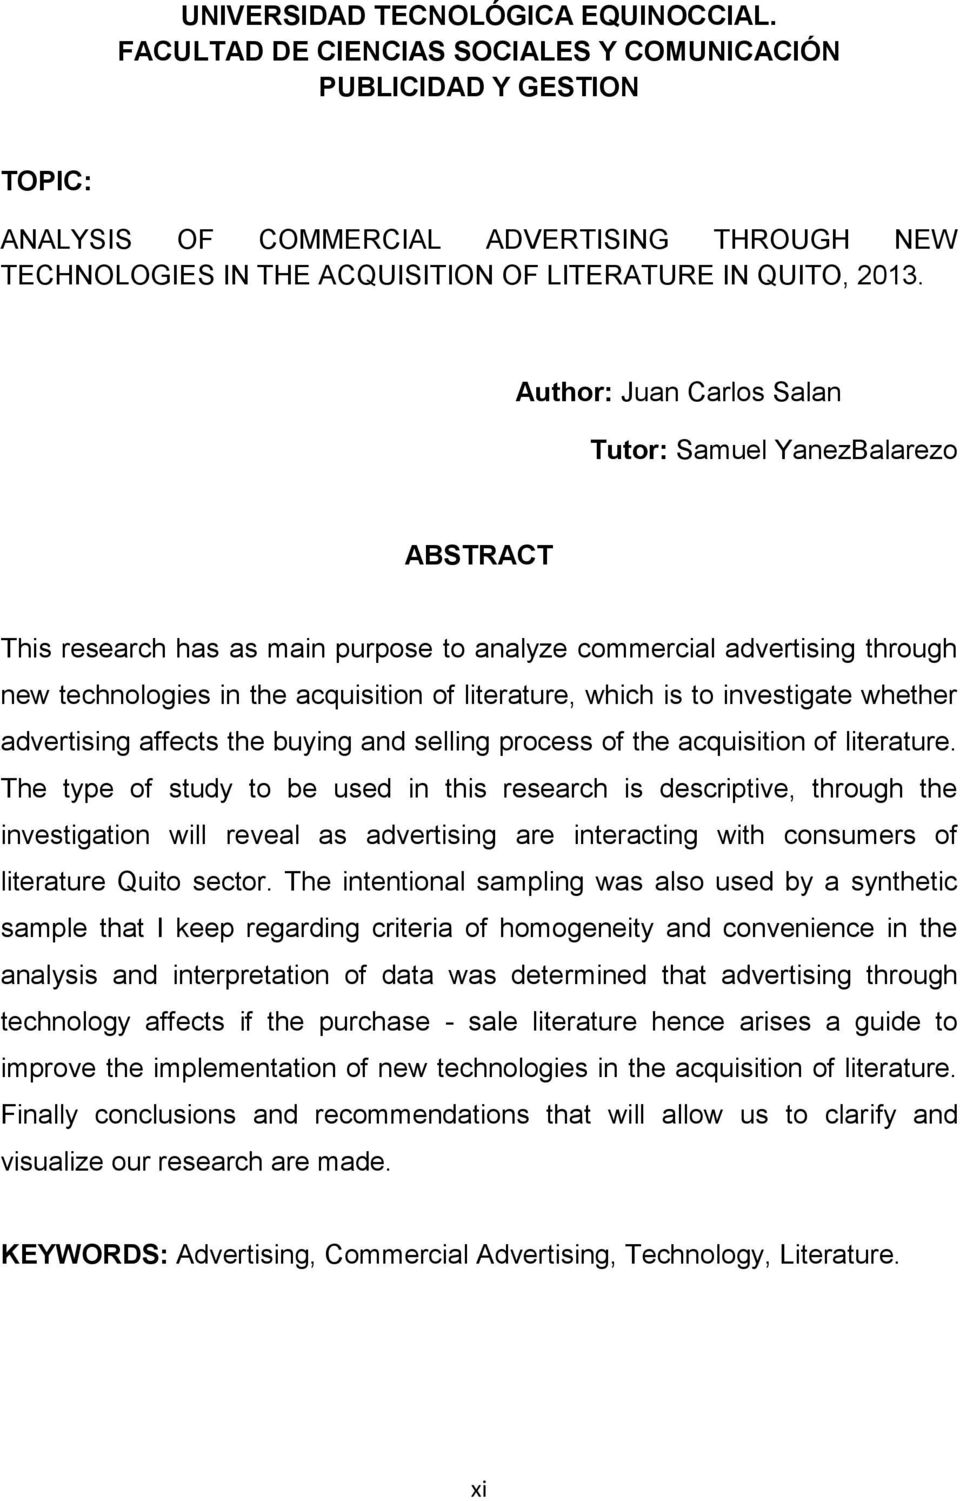 Author: Juan Carlos Salan Tutor: Samuel YanezBalarezo ABSTRACT This research has as main purpose to analyze commercial advertising through new technologies in the acquisition of literature, which is